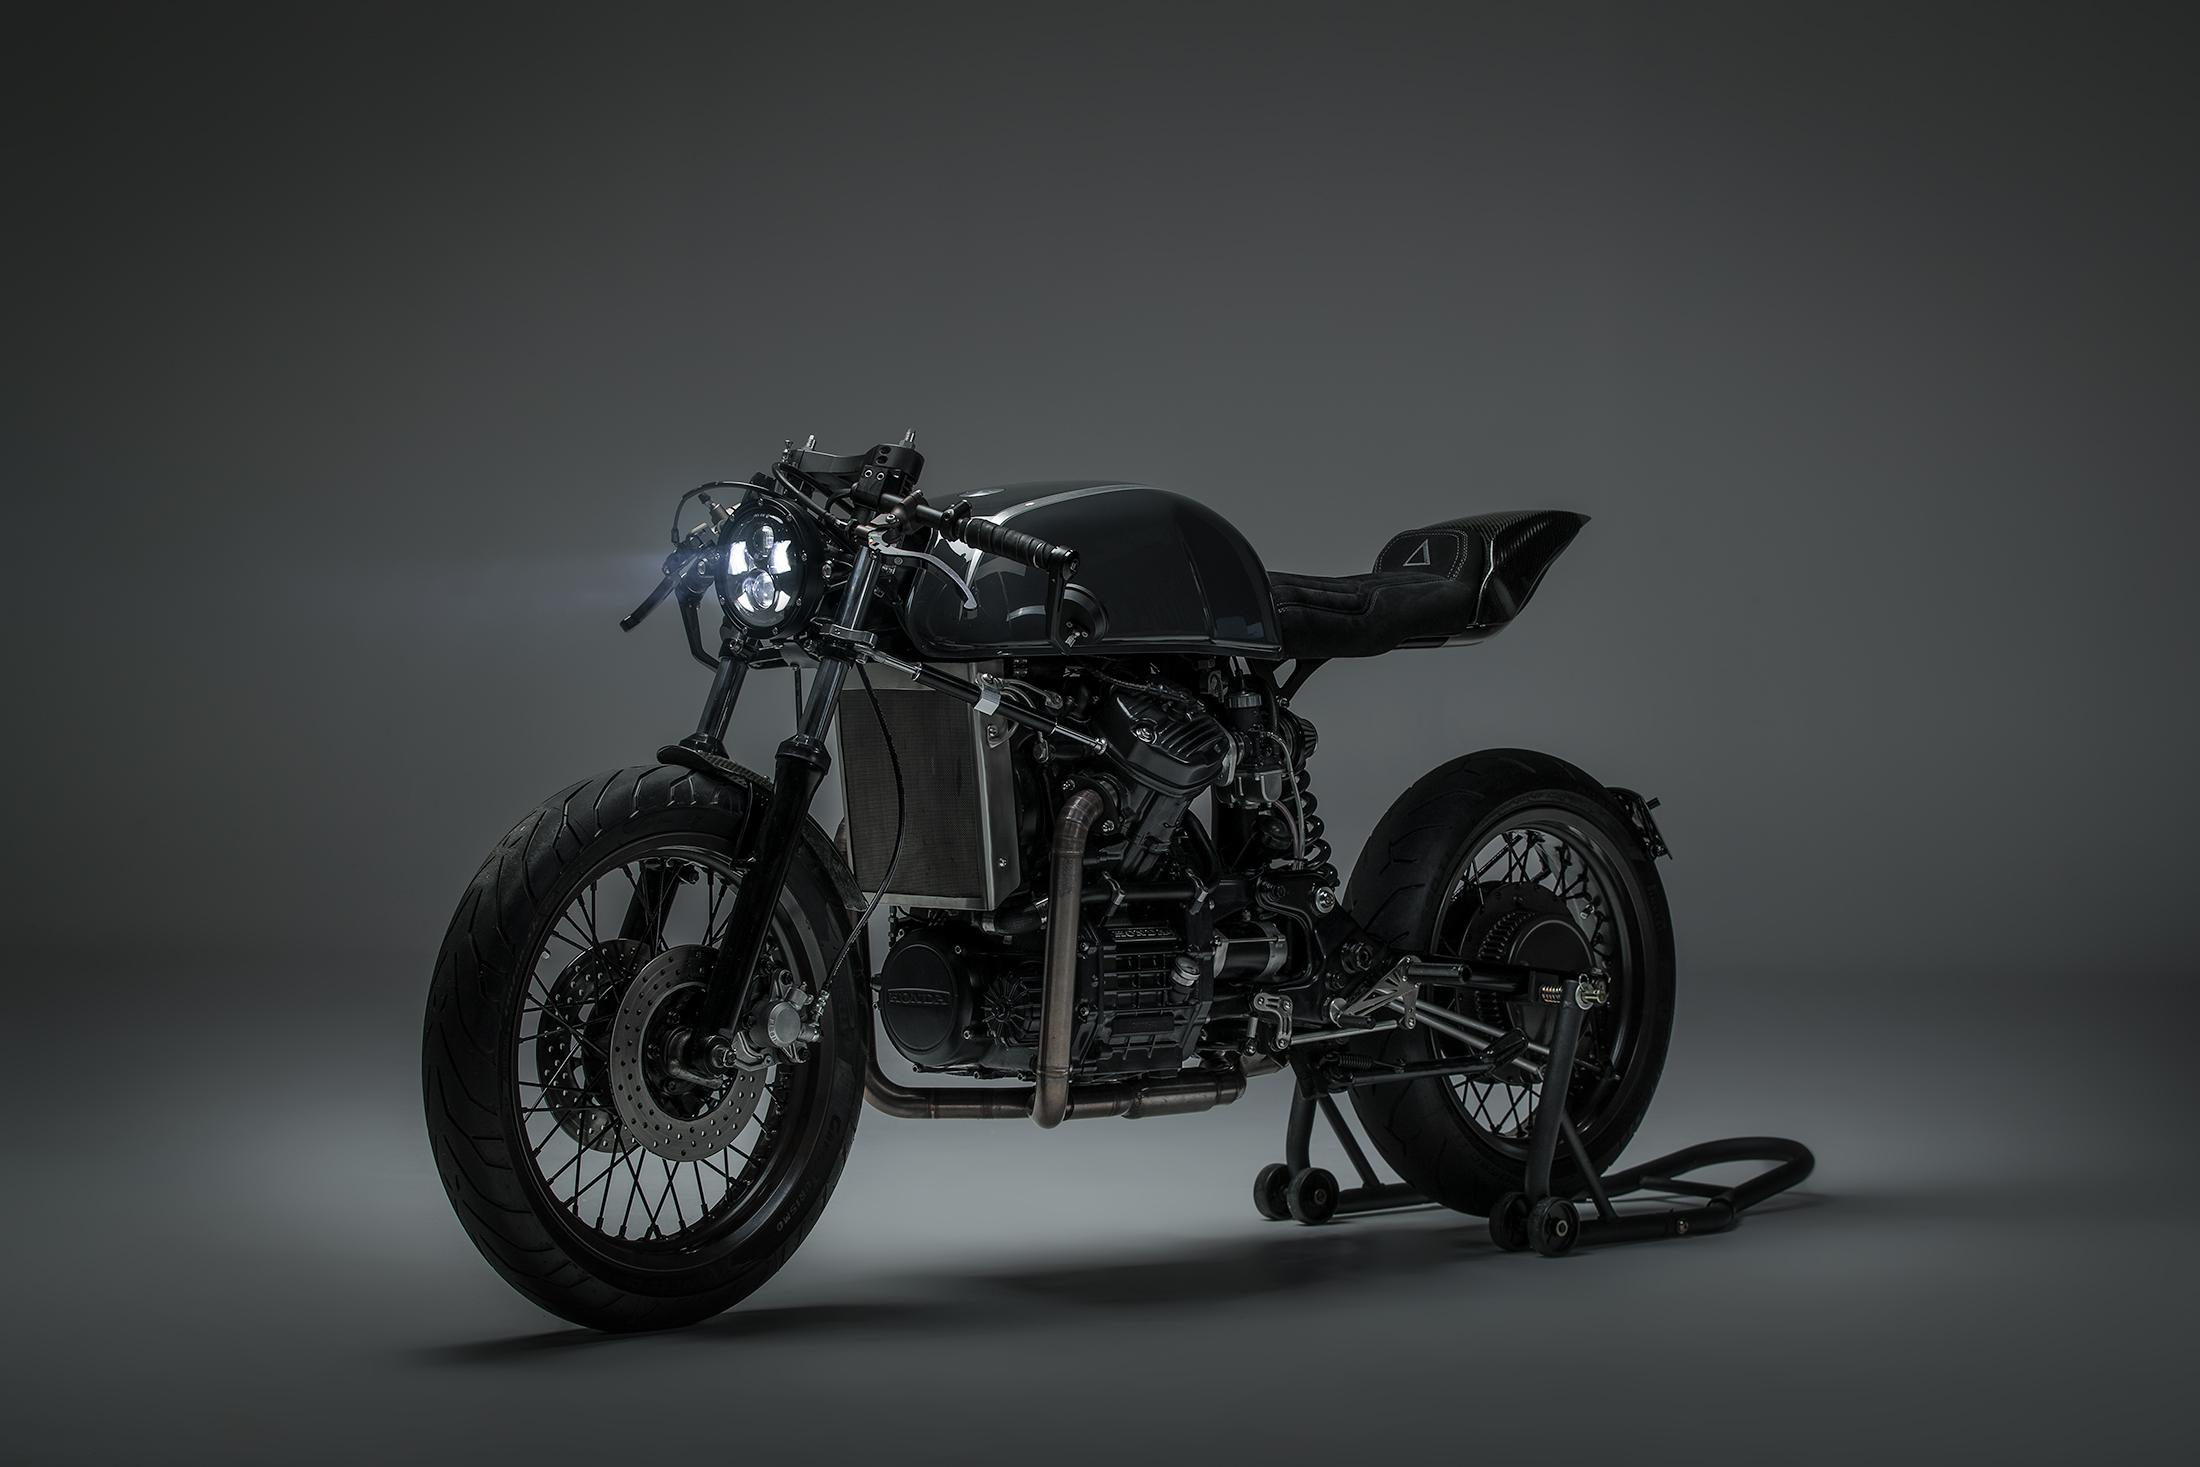 honda C500 cafe racer custom build